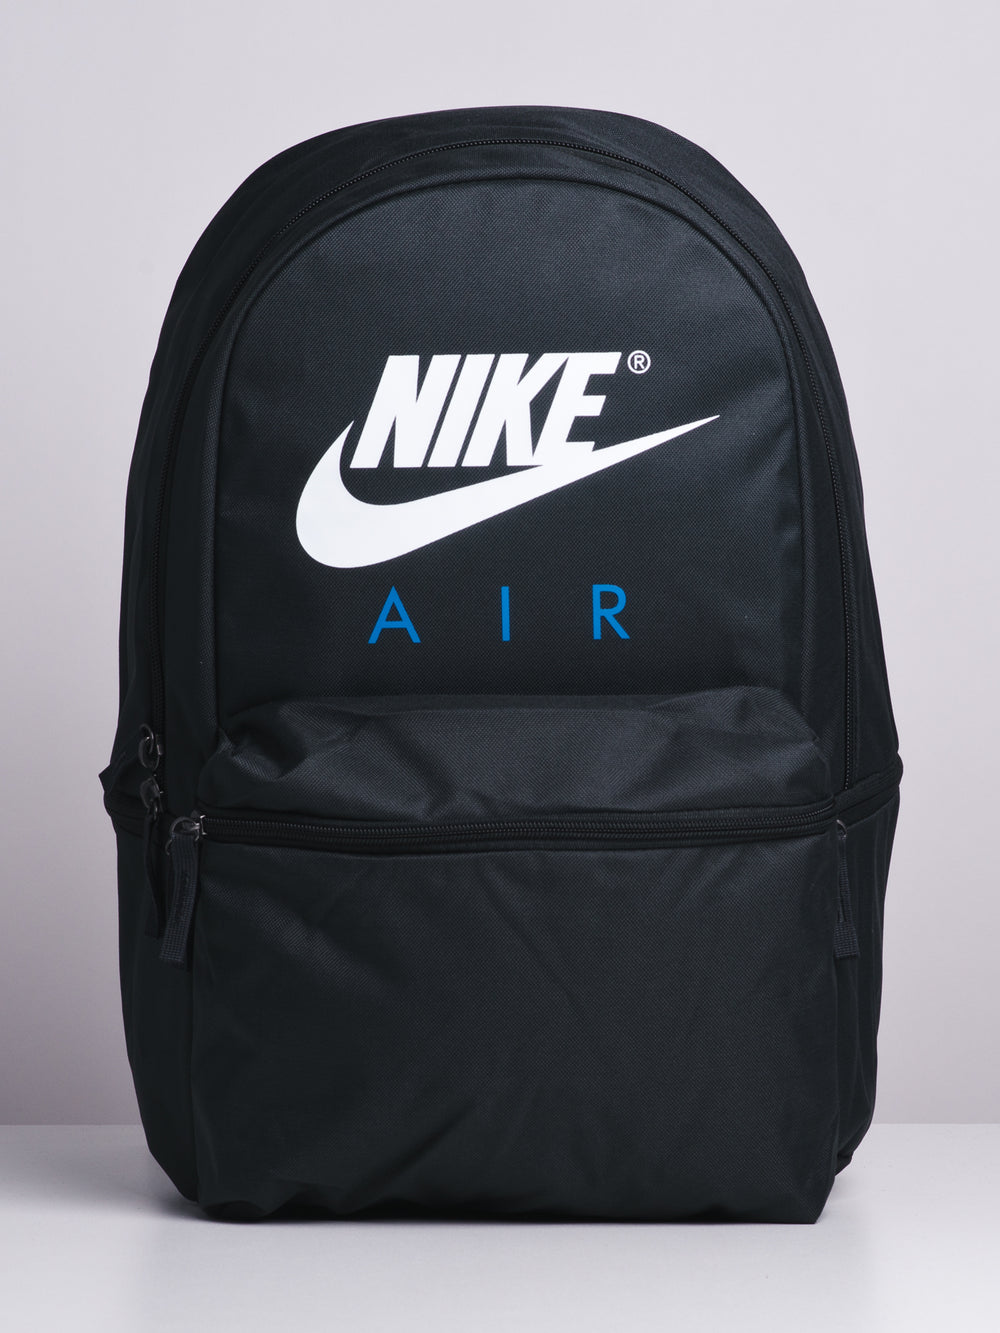 b42cfec2f85c2 NIKE AIR BACKPACK - ANTHRACITE